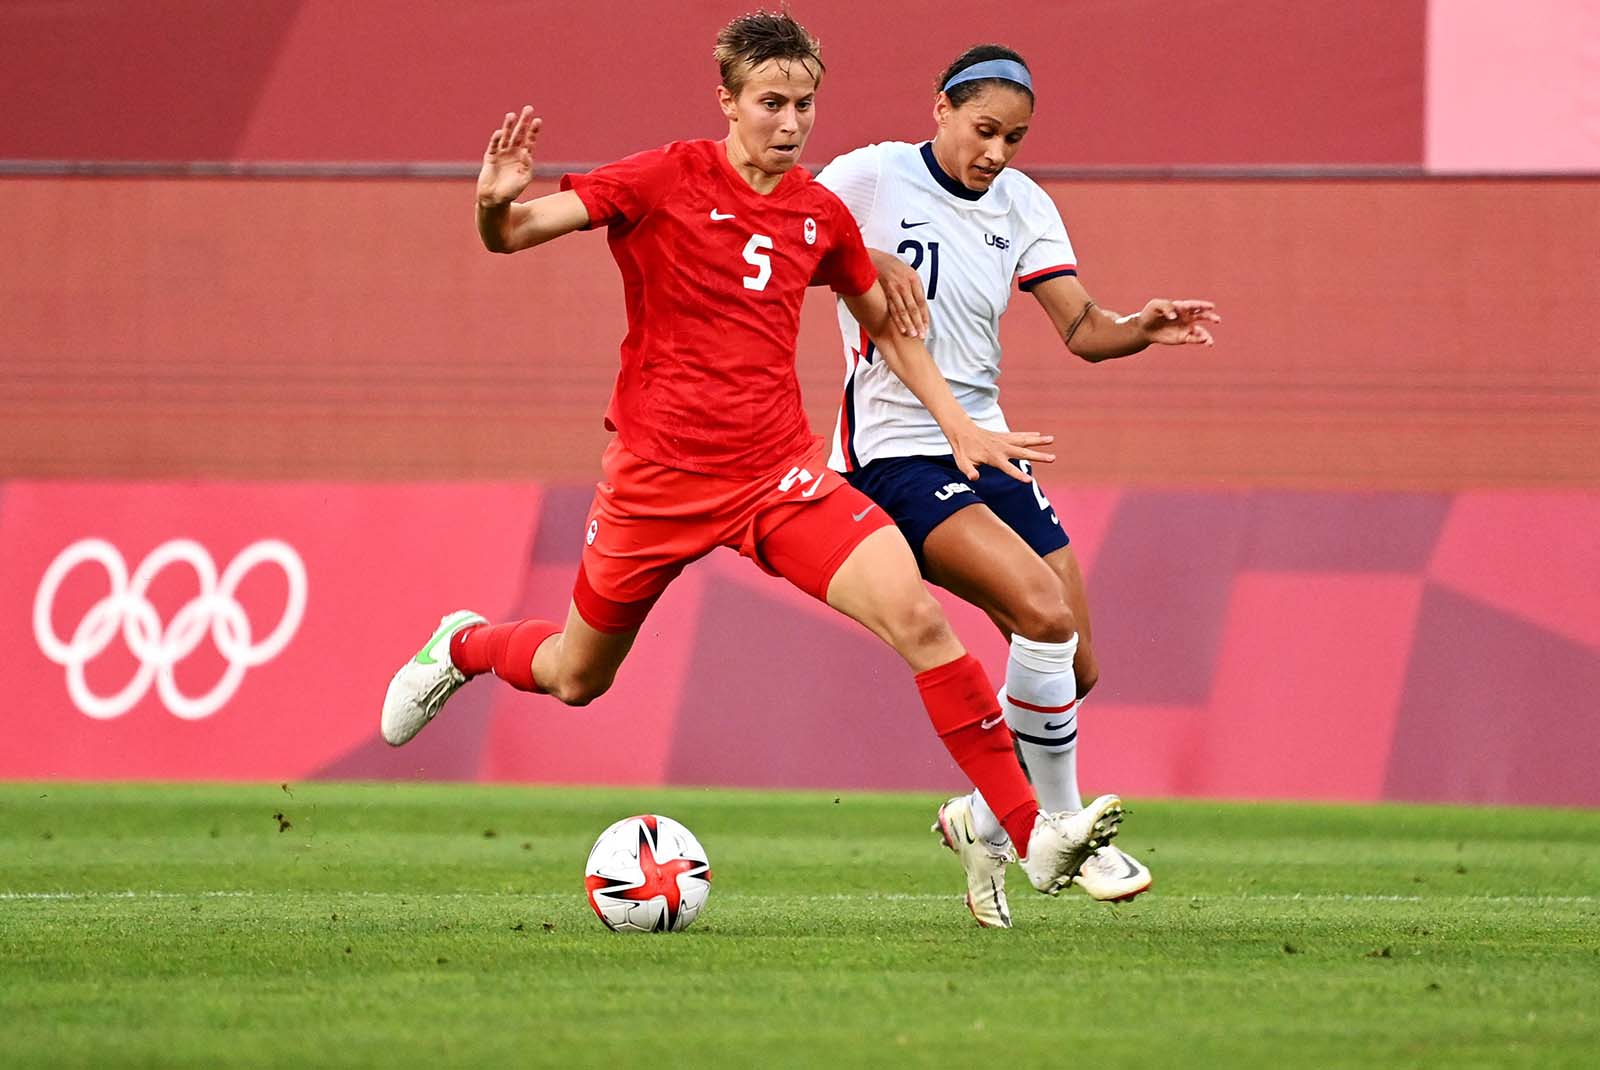 Canada's midfielder Quinn, left, is marked by the United States forward Lynn Williams during the women's semi-final soccer match on August 2.